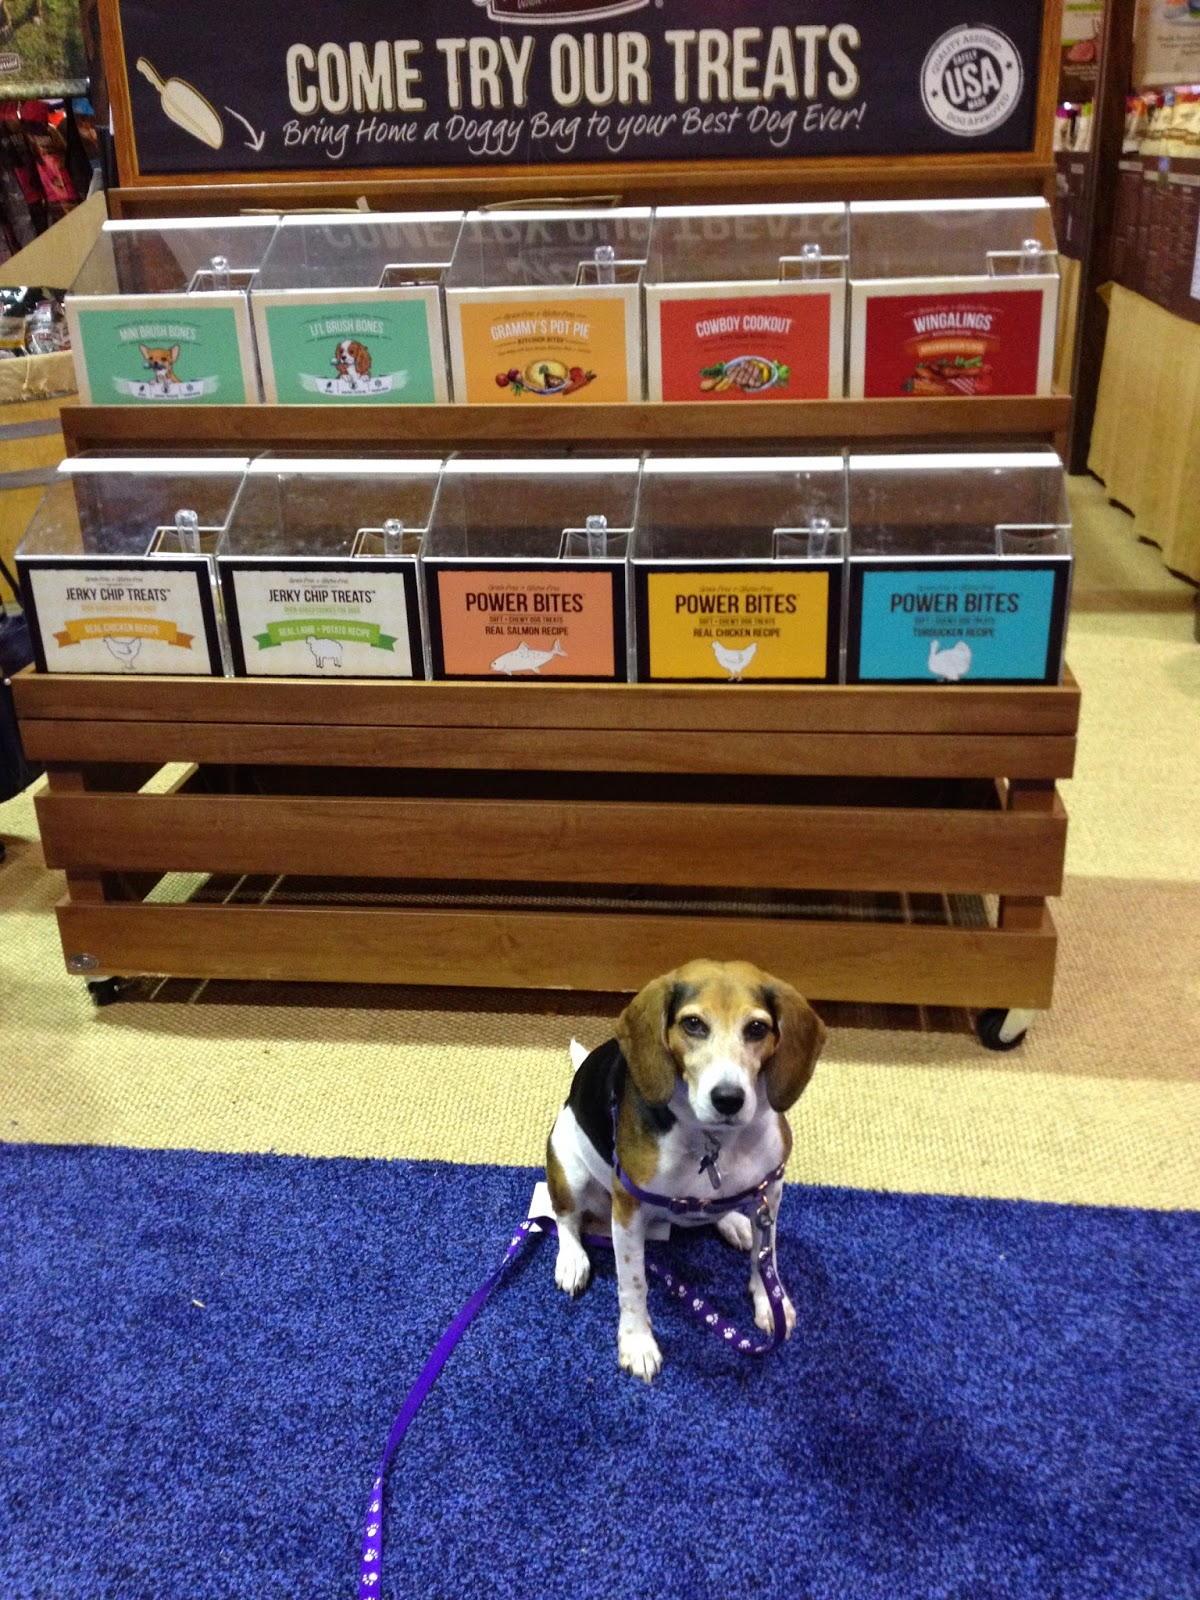 Life With Beagle: Global Pet Expo: Photos and observations